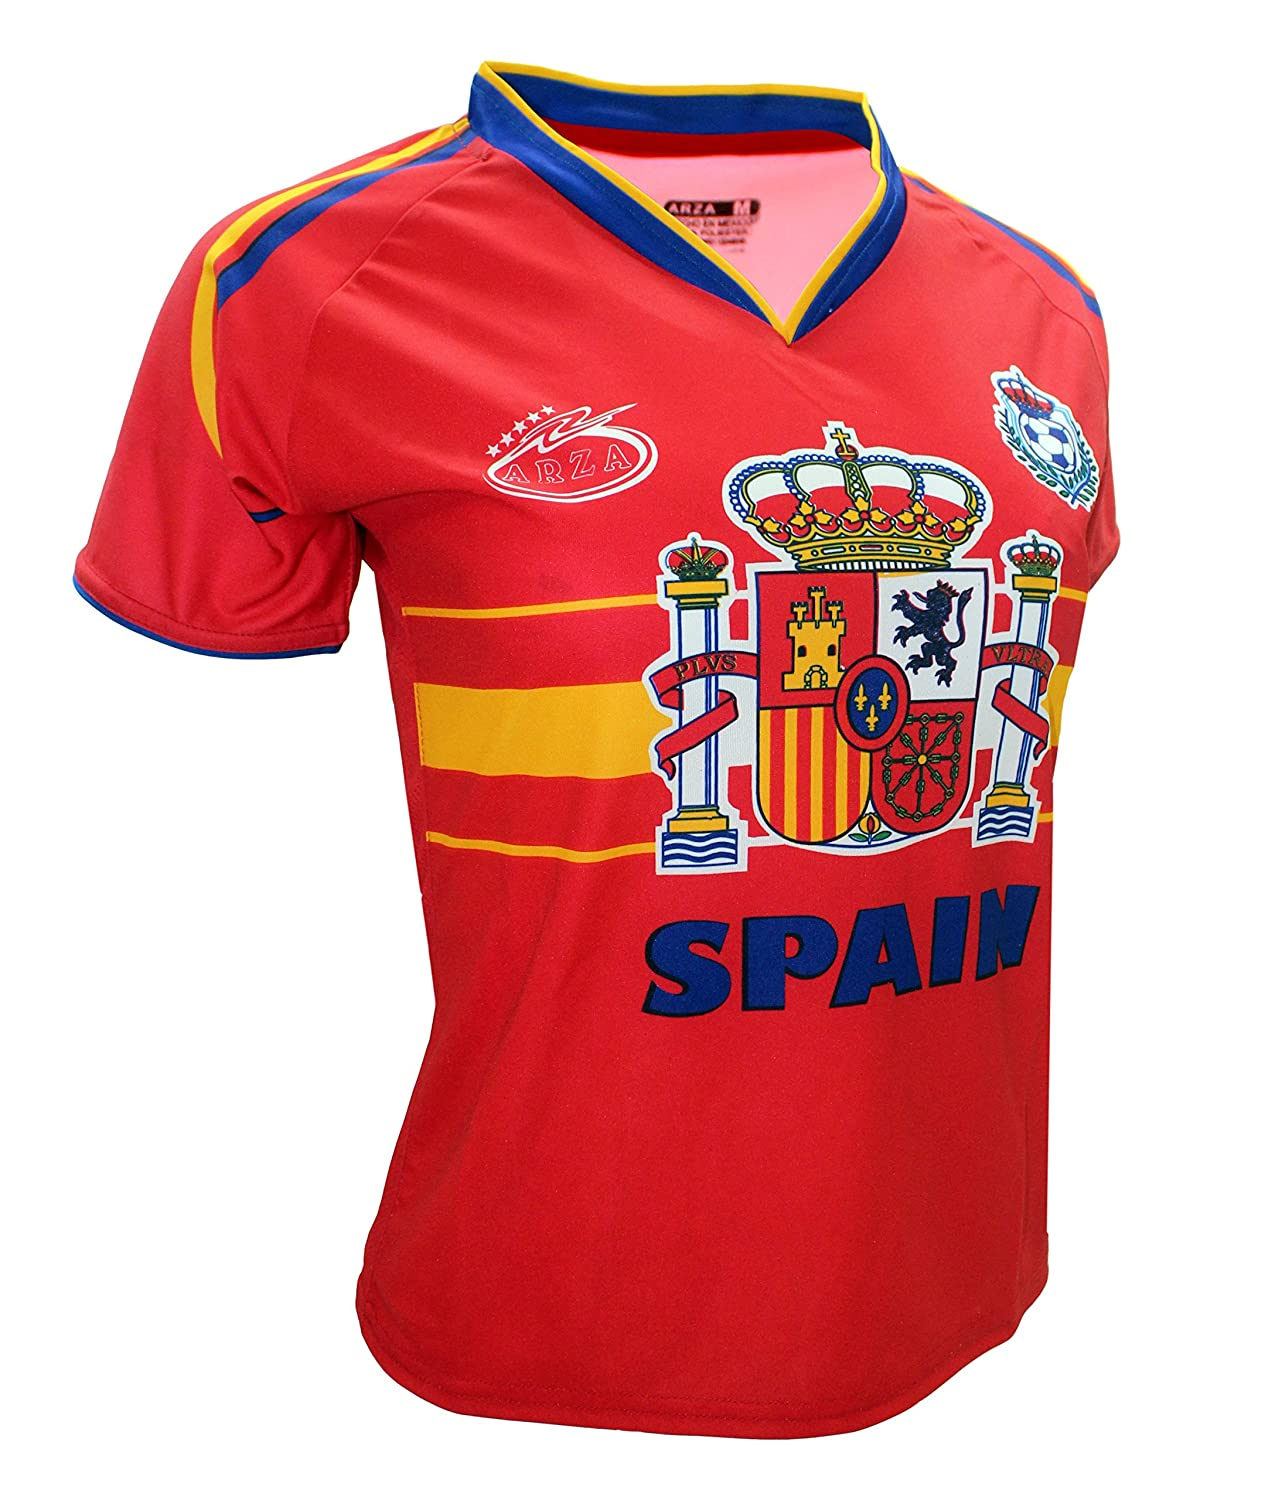 281ed67baa7 Amazon.com: Spain Women Arza Soccer Jersey 100% Polyester. Color Red and  White: Sports & Outdoors